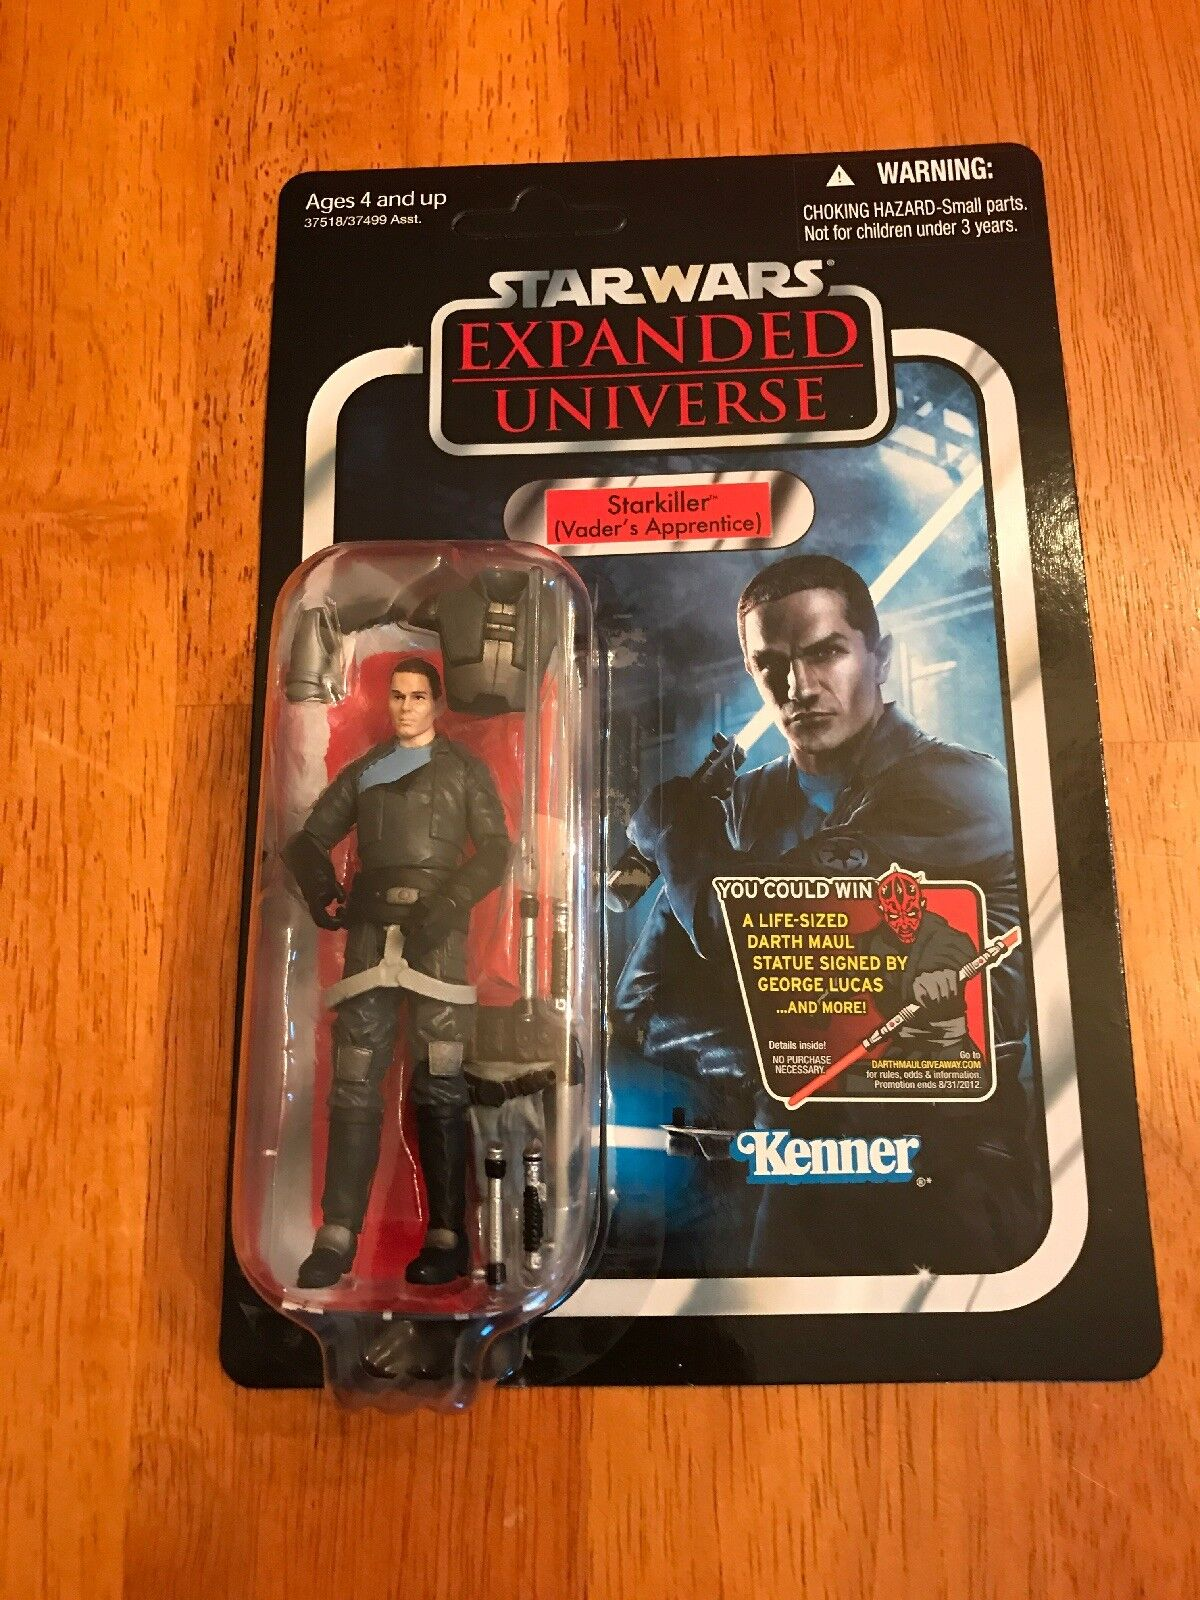 NEW STAR WARS EXPANDED UNIVERSE STARKILLER SITH FIGURE UNPUNCHED IN CASE MOC